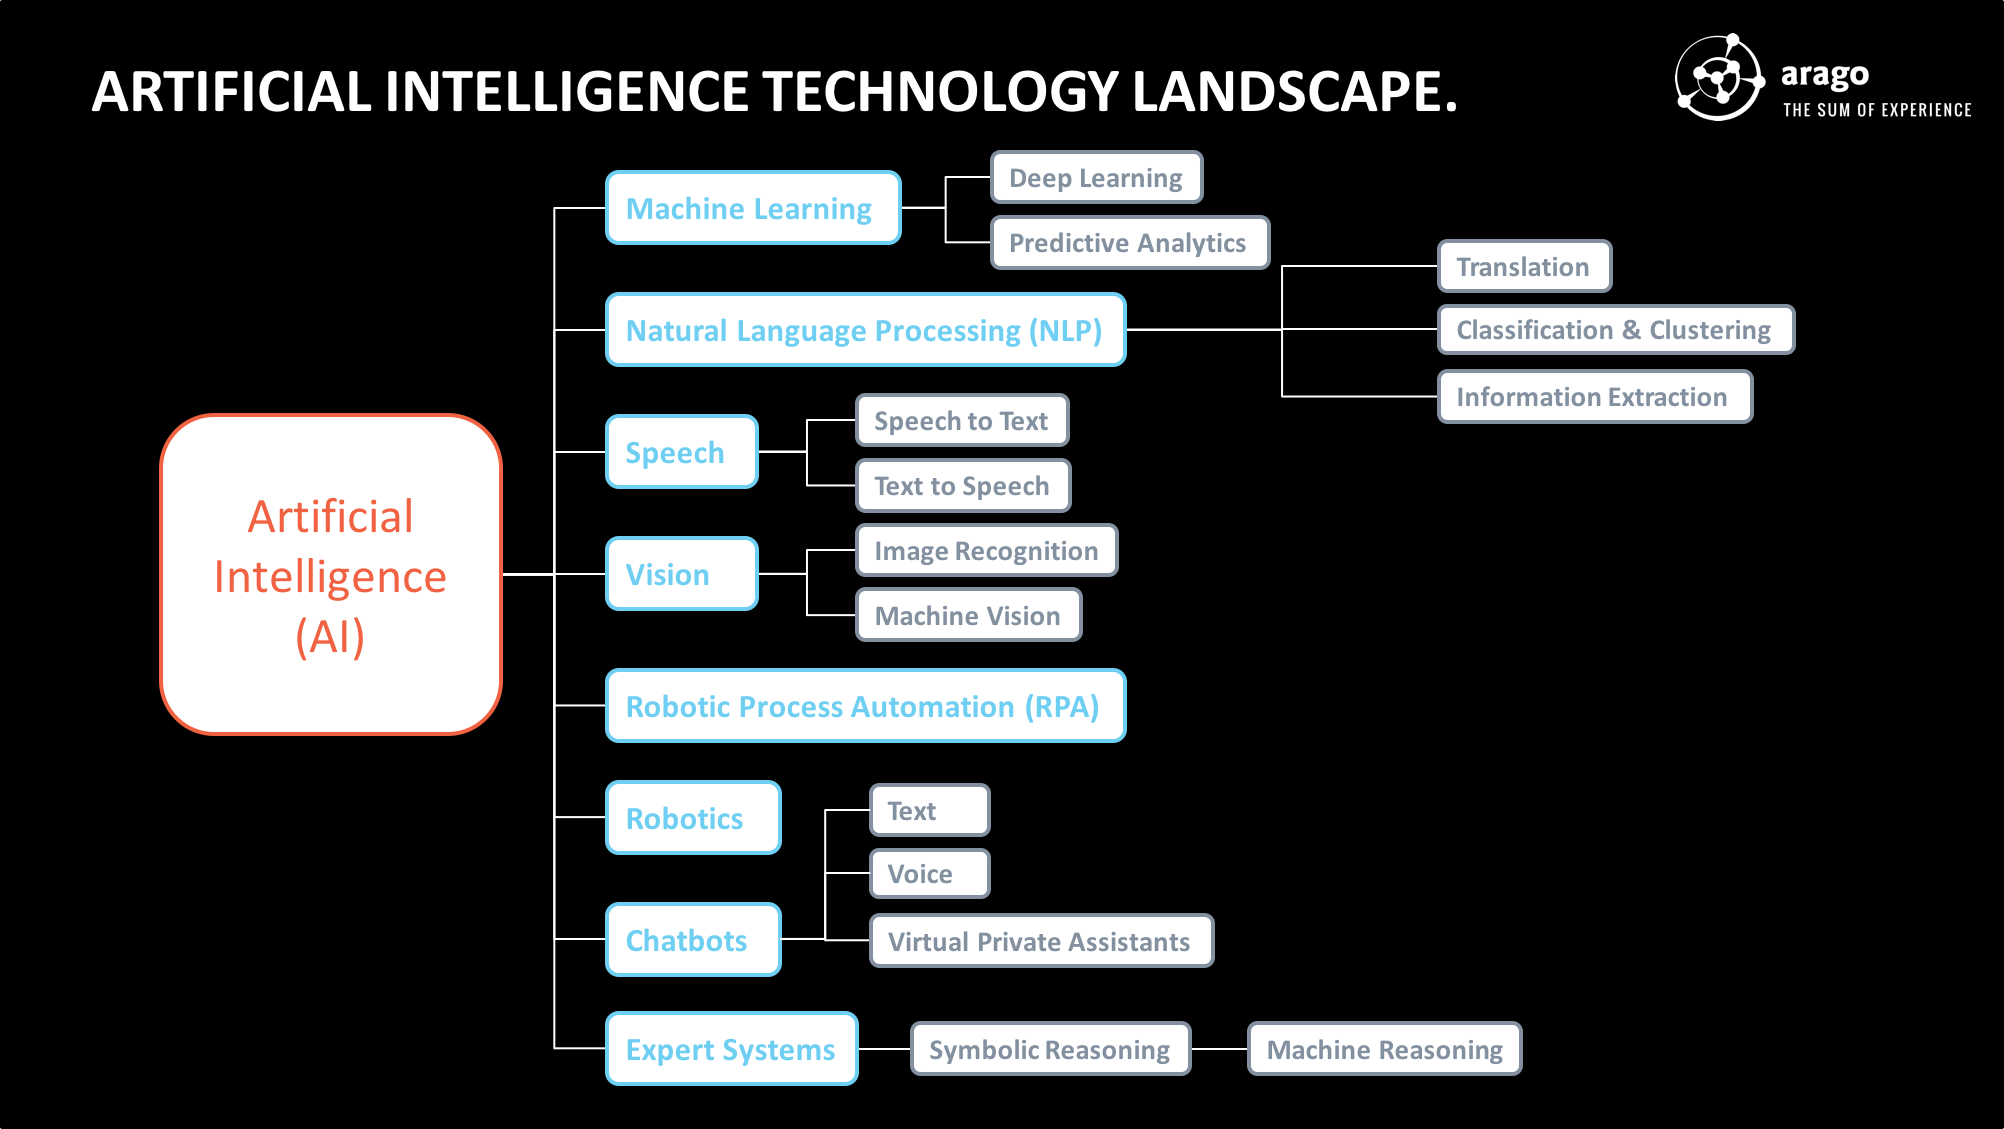 Figure: Artificial Intelligence Technology Landscape